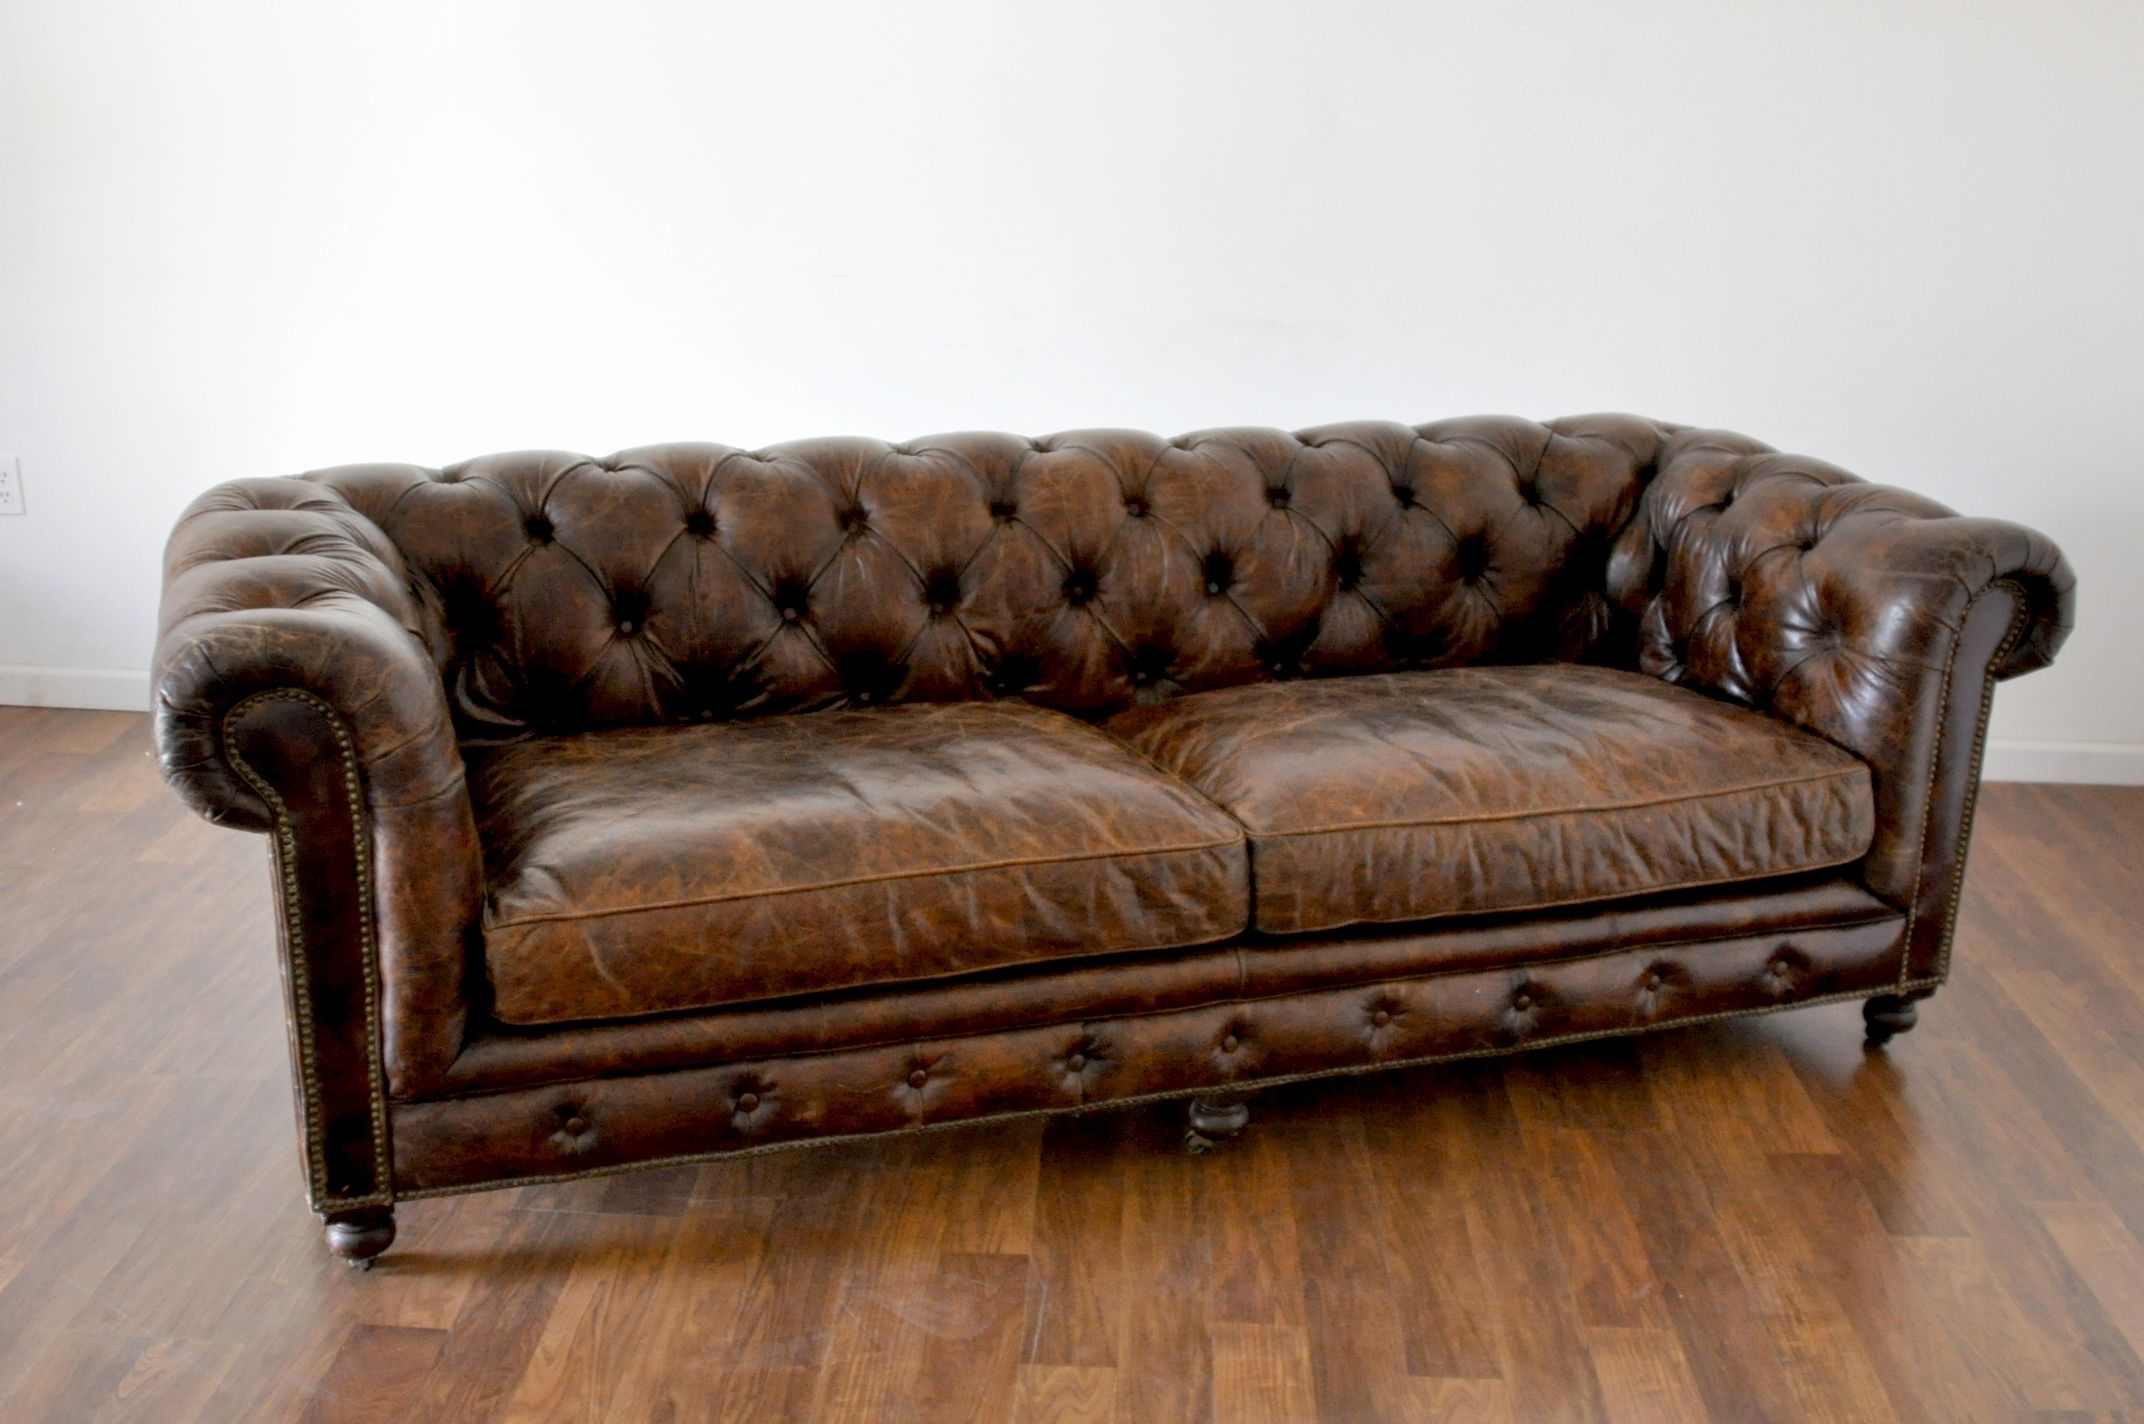 Best Idea Tufted Brown Leather Sofa Graphics Tufted Brown 400 x 300